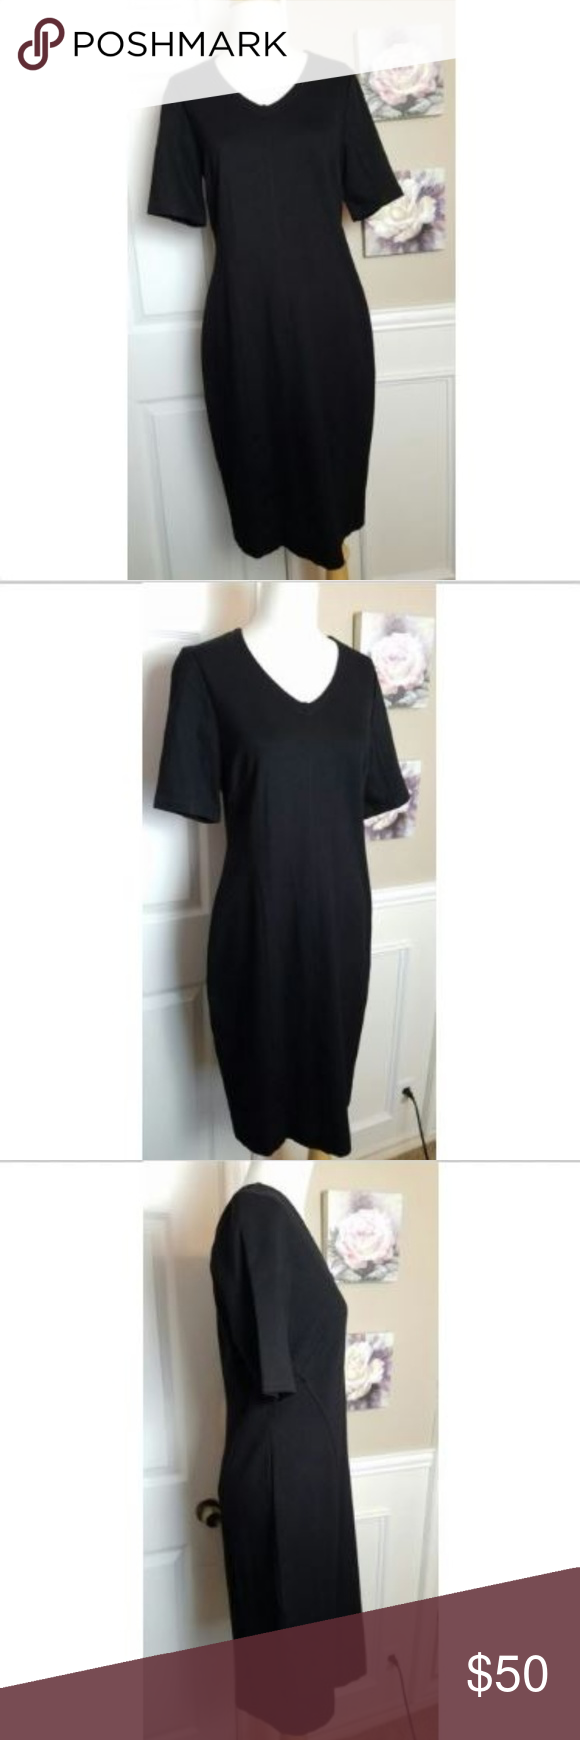 434e5a4a91a Cabi Claire Black Dress 3101 Size 6 New with Tags CABI CLAIRE DRESS STYLE  3101 SIZE 6 NWT PLEASE SEE ALL PICTURES SIZE CHART XXS (00) XS (0 2) S  (4 6) M ...